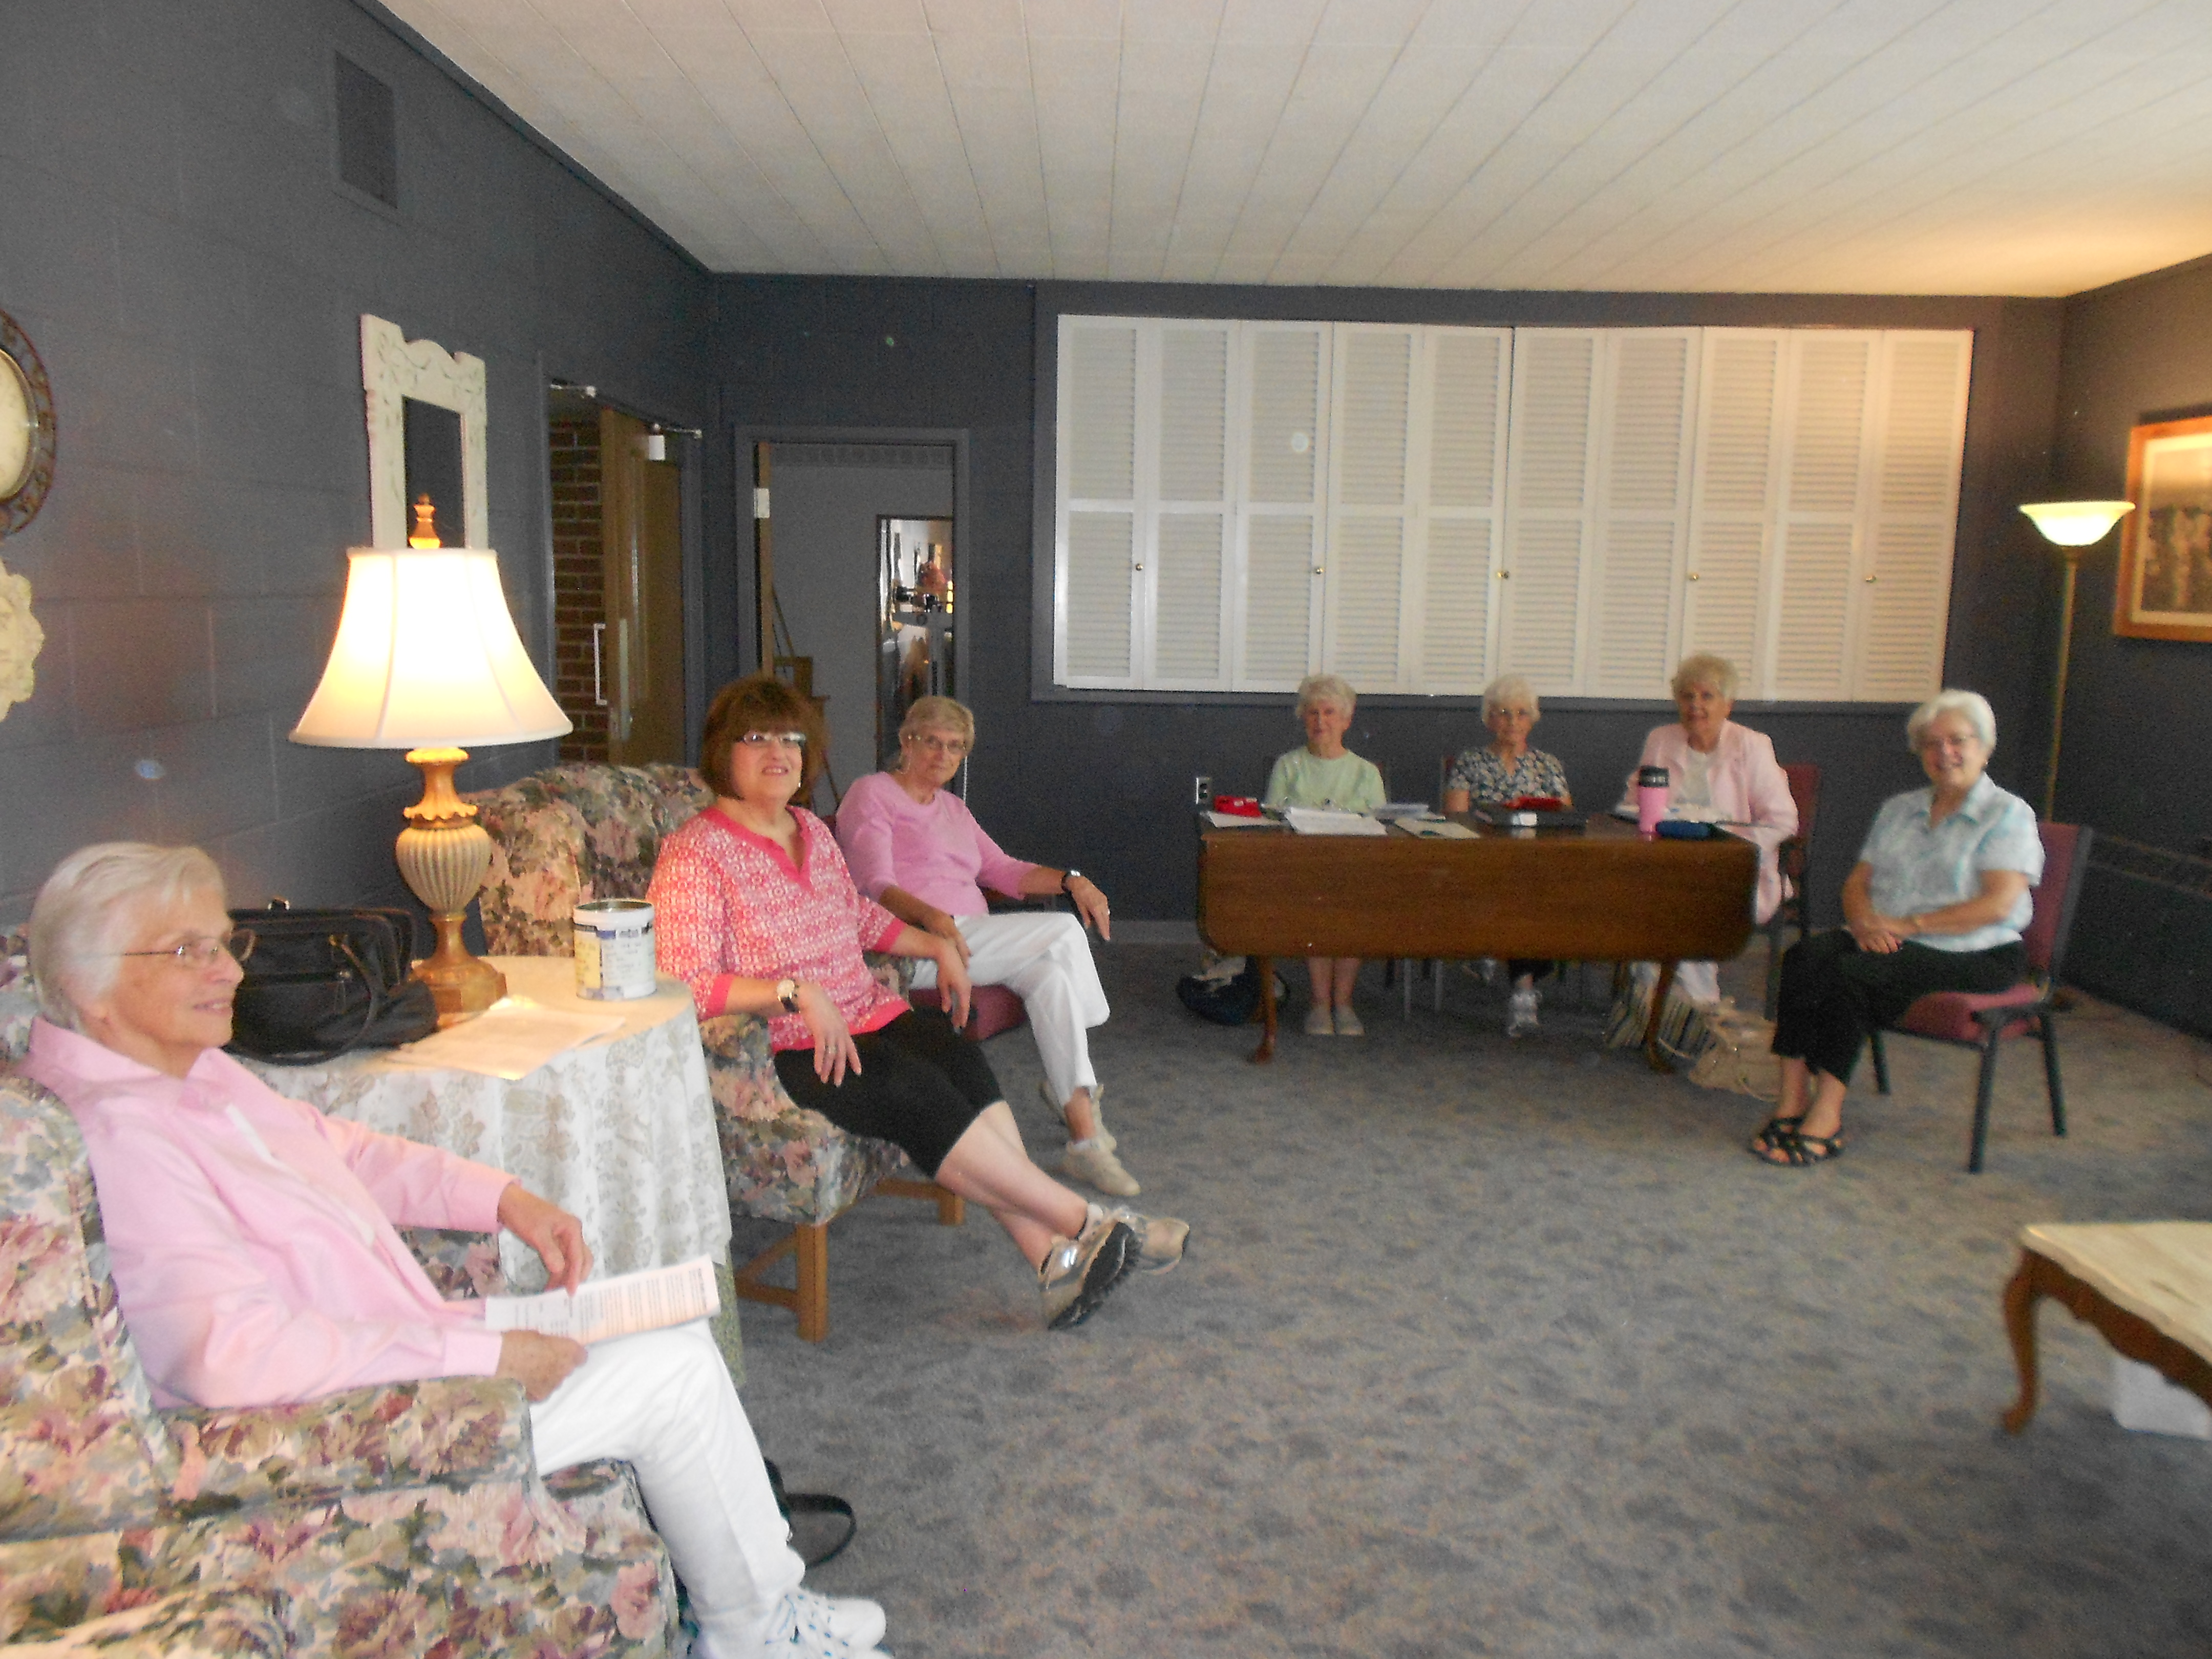 The TOPS Club of Carmel meets once a week at an area church. (Photo by Gary Boskovich)